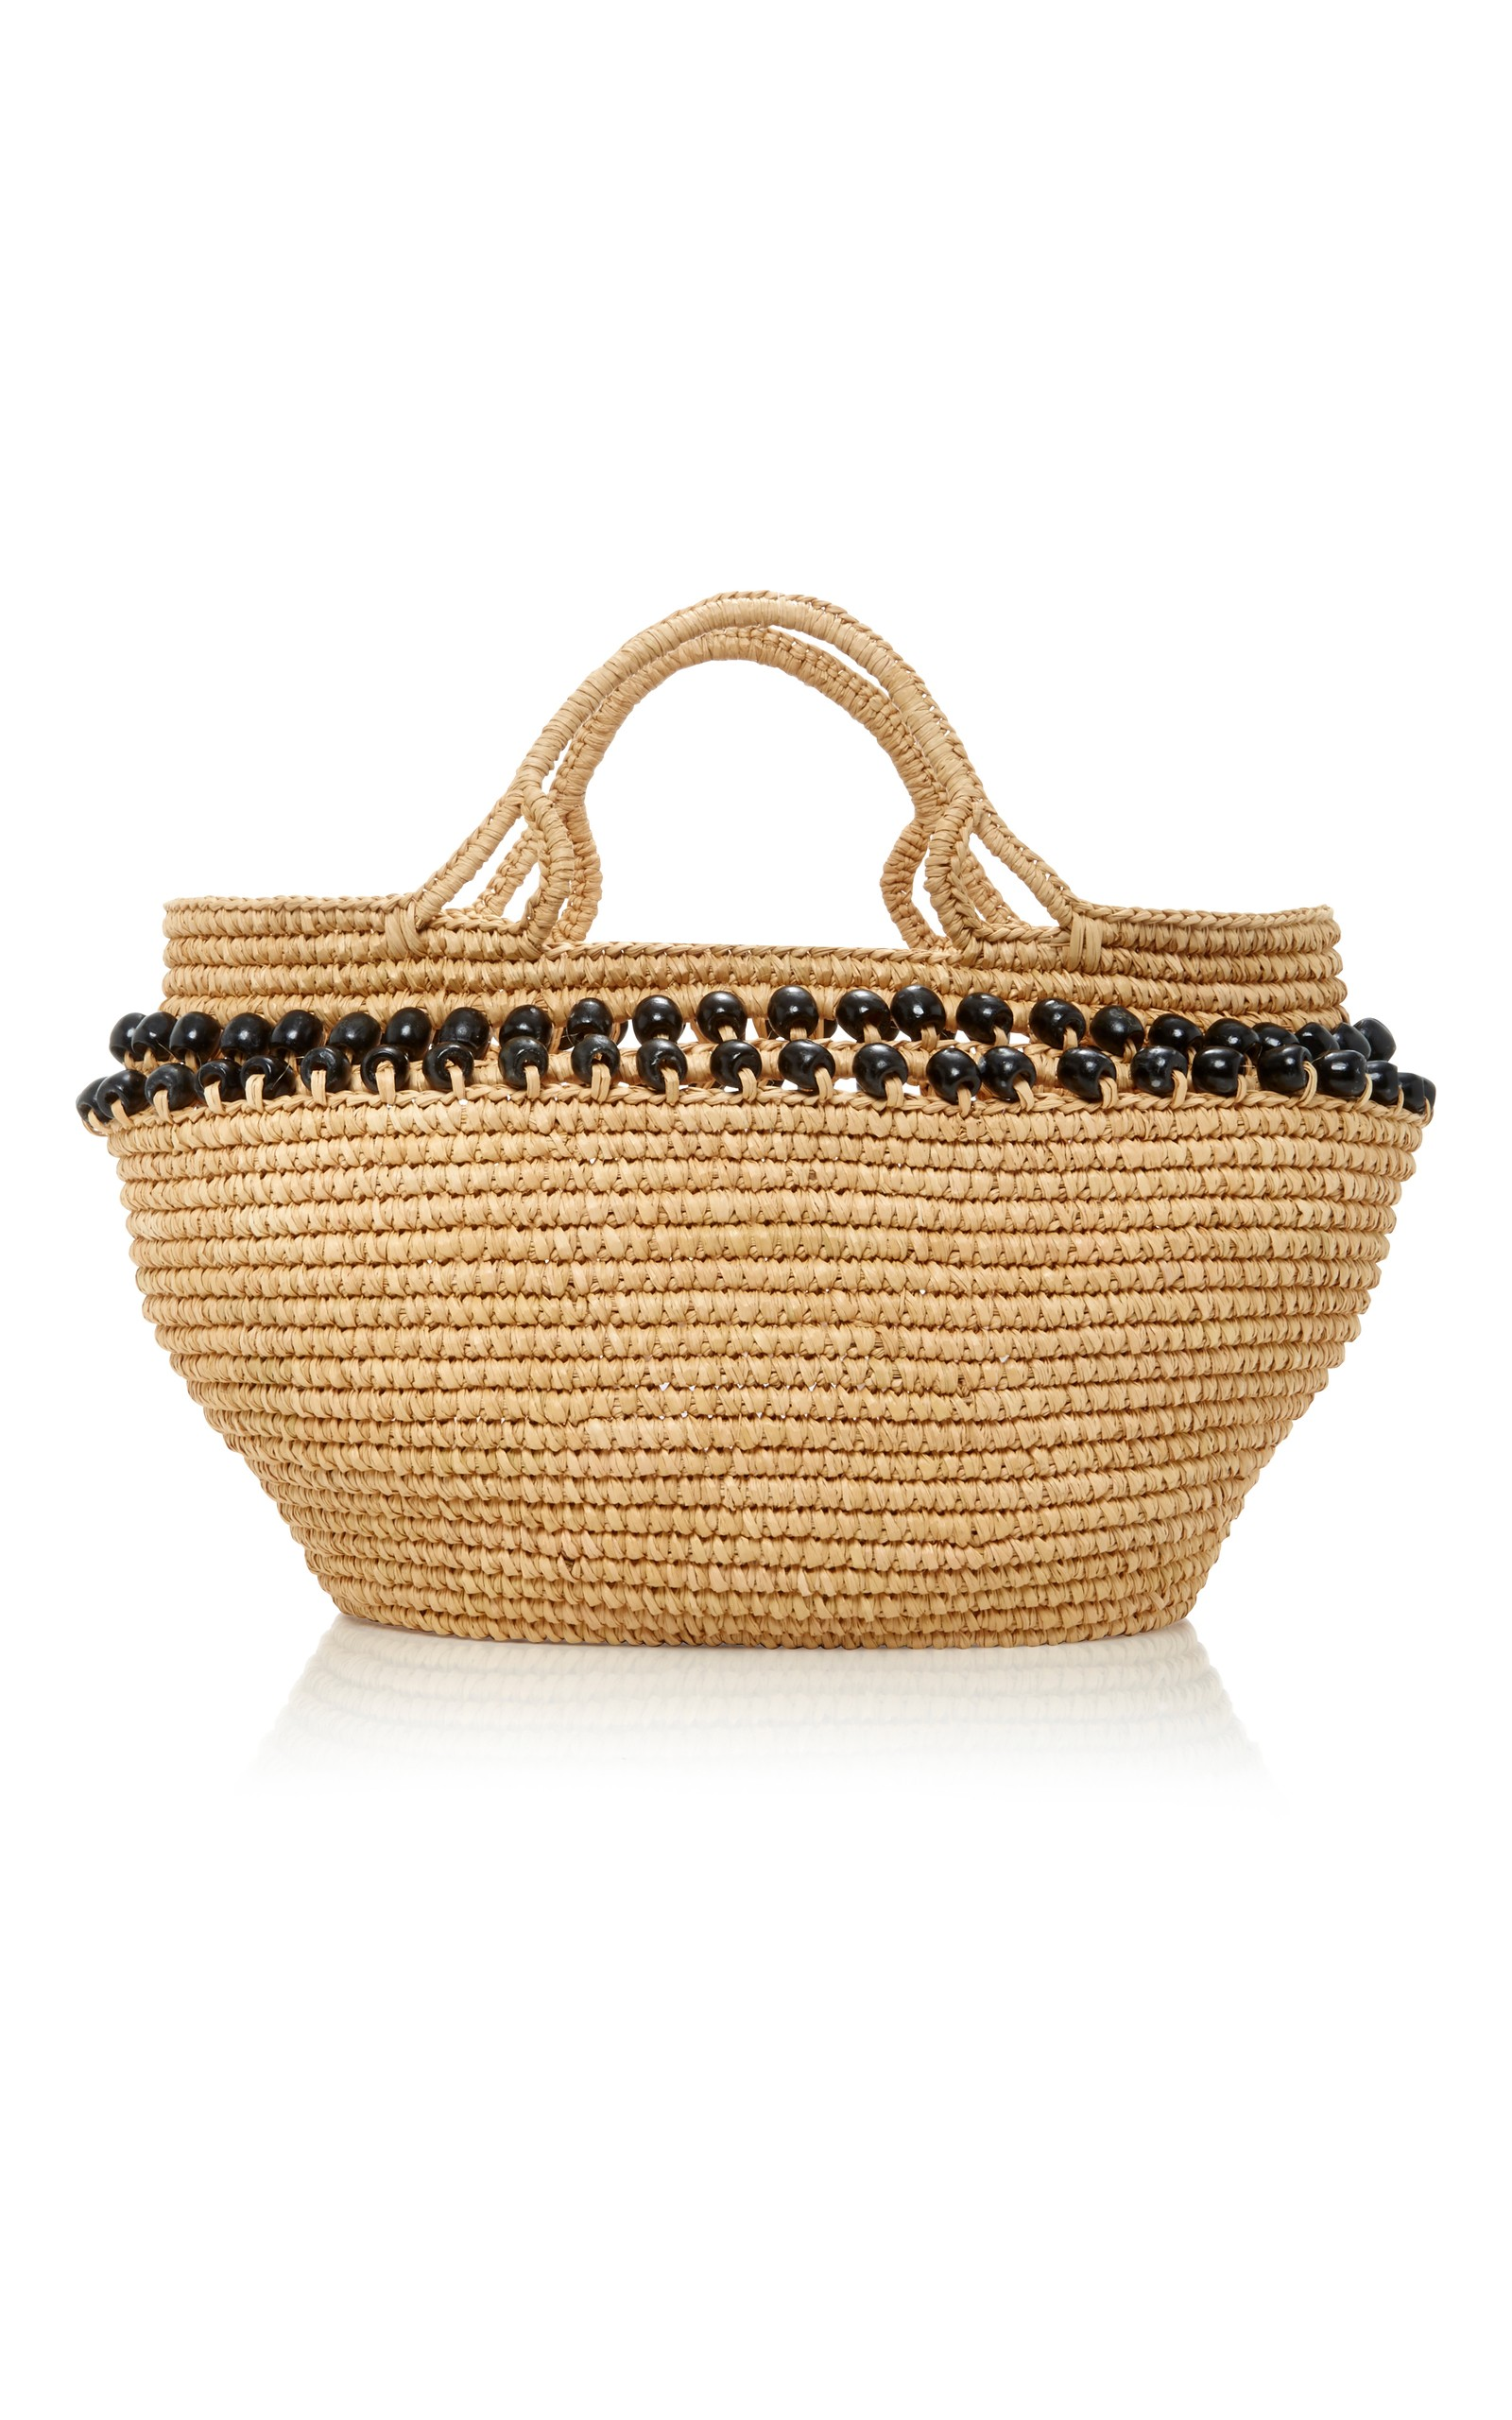 Basket-Inspired Beach Bags - Born on Fifth